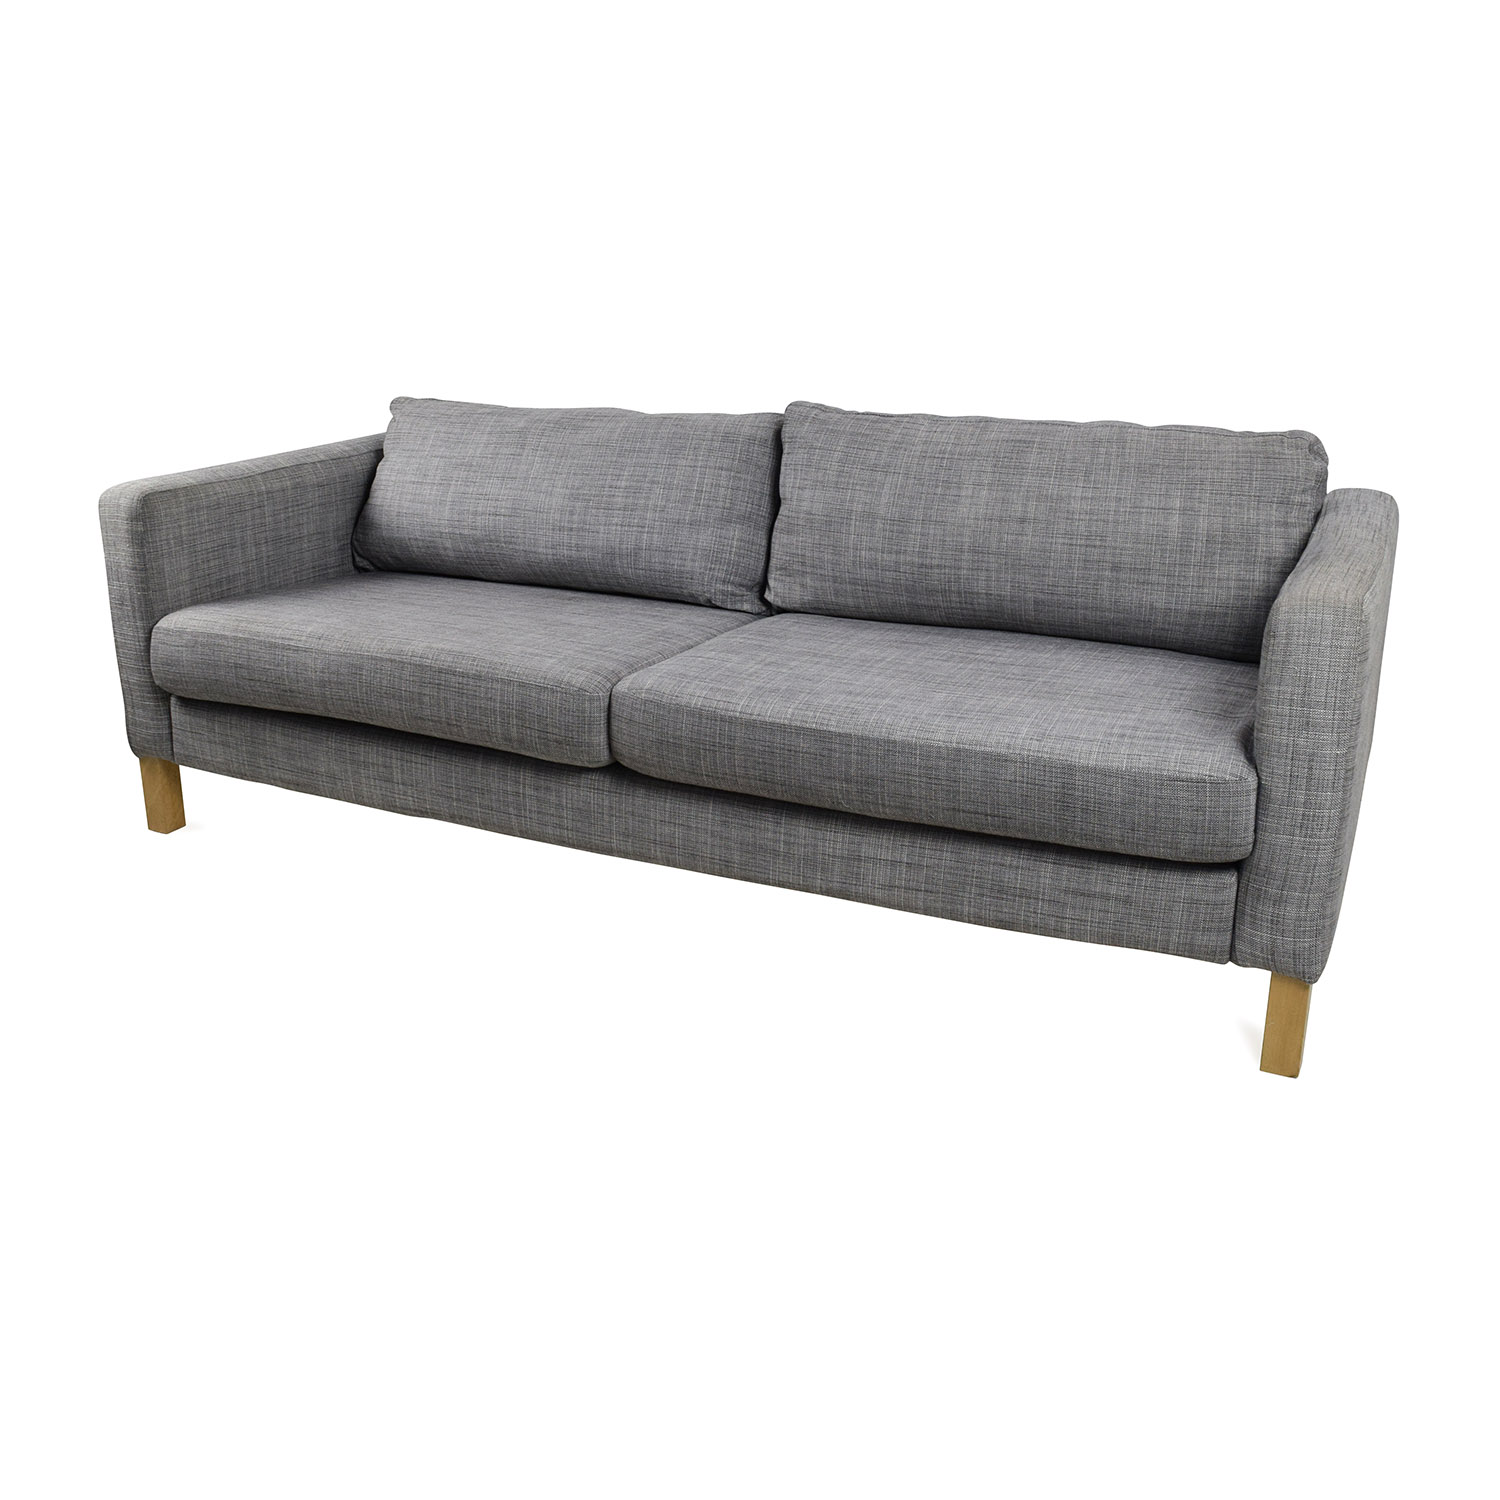 50 off ikea ikea karlstad sofa sofas for Ikea sofa set